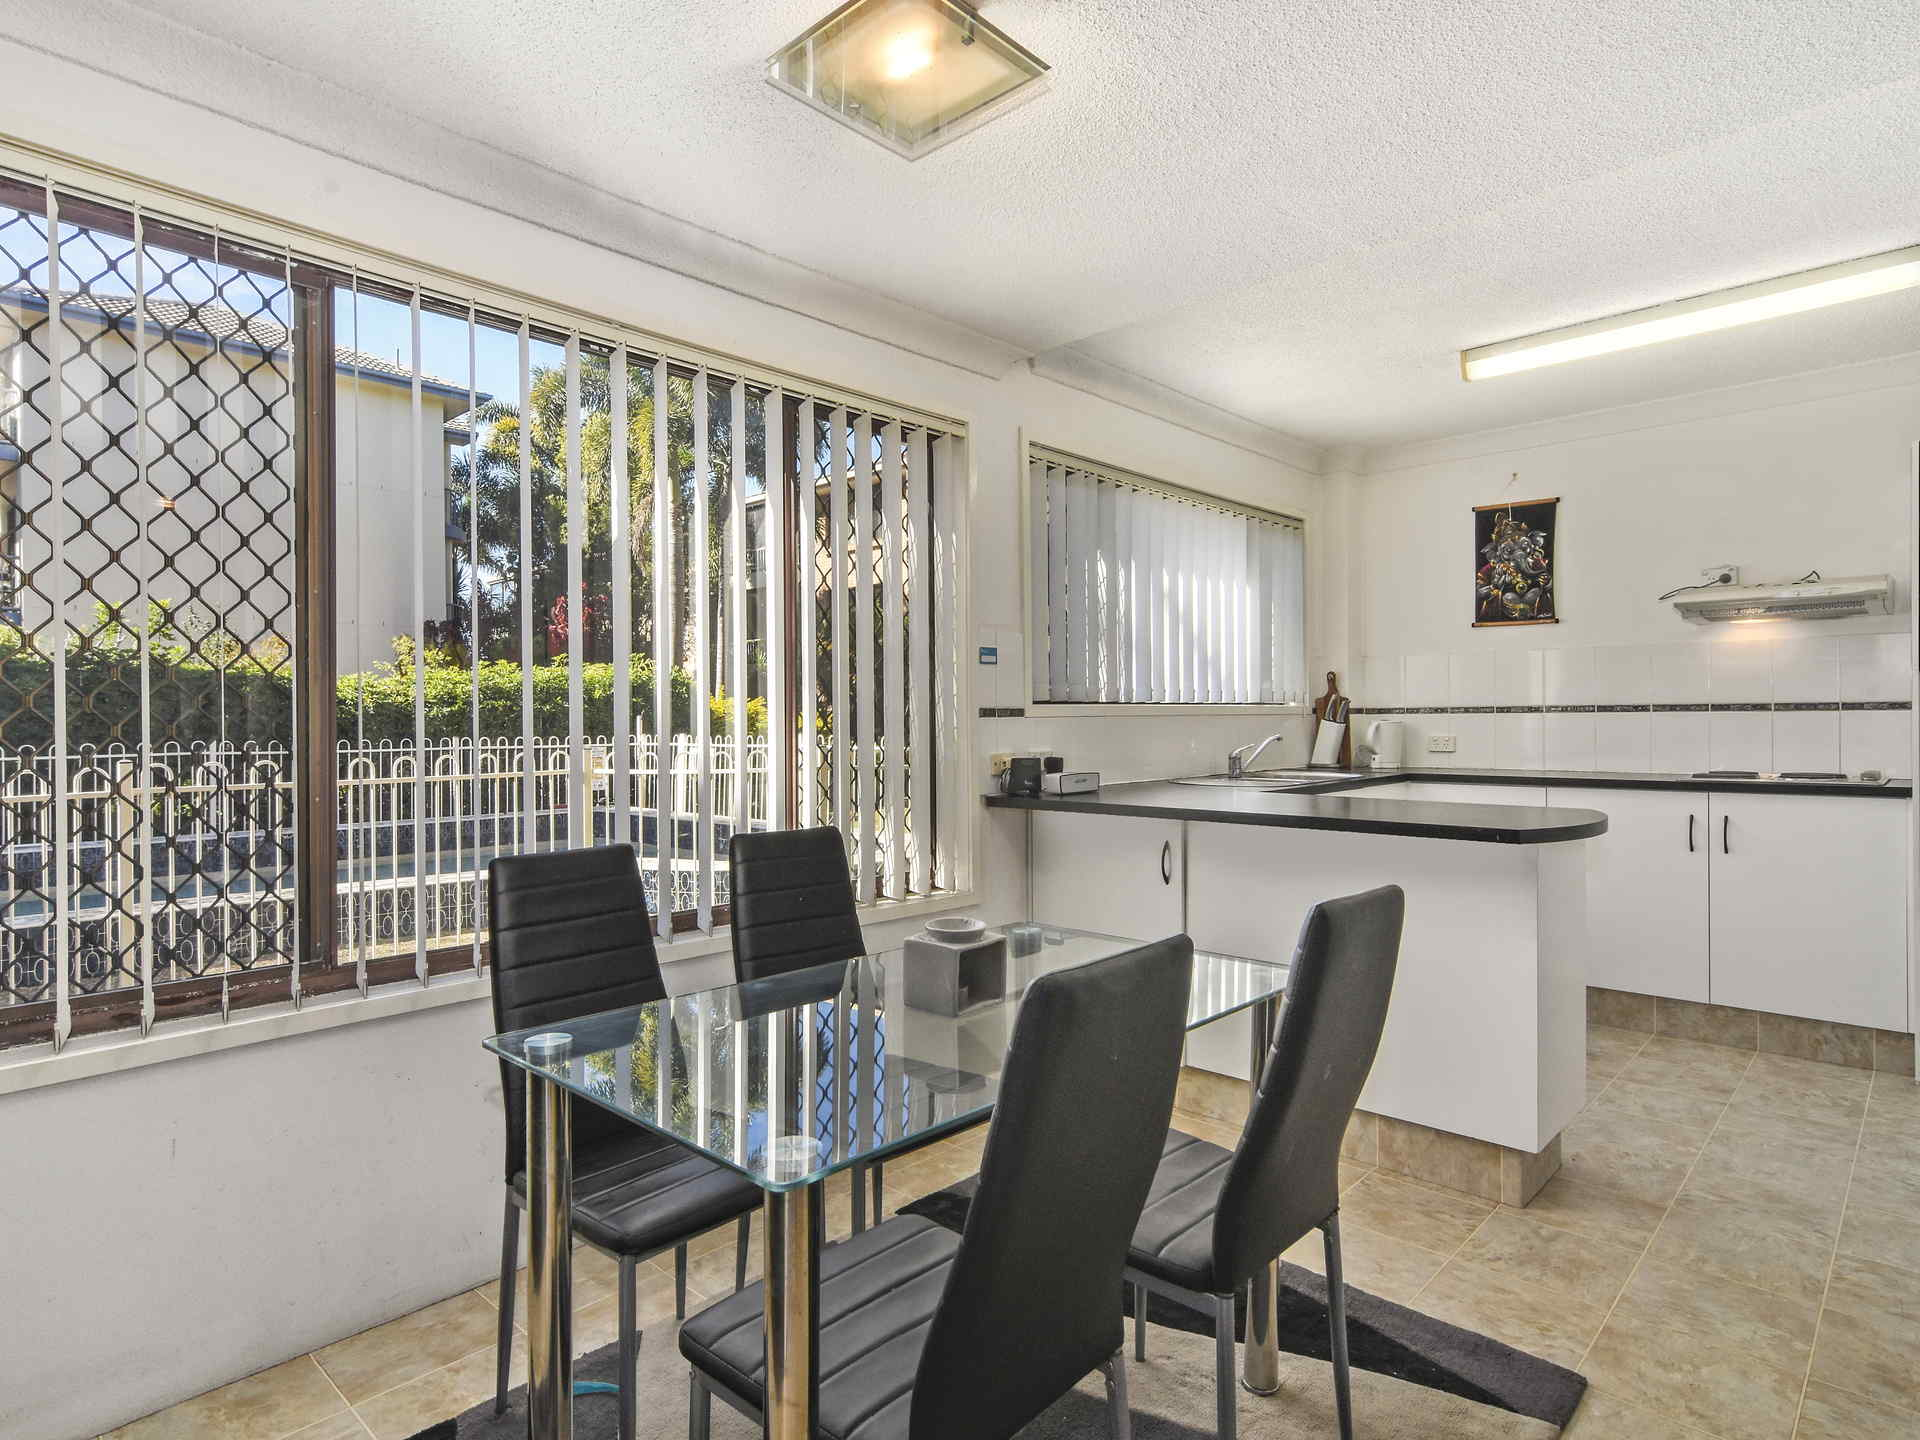 Real Estate | Gold Coast | Chevron Realty | 006 Open2view Id512753 2 548 Marine Parade Biggera Waters